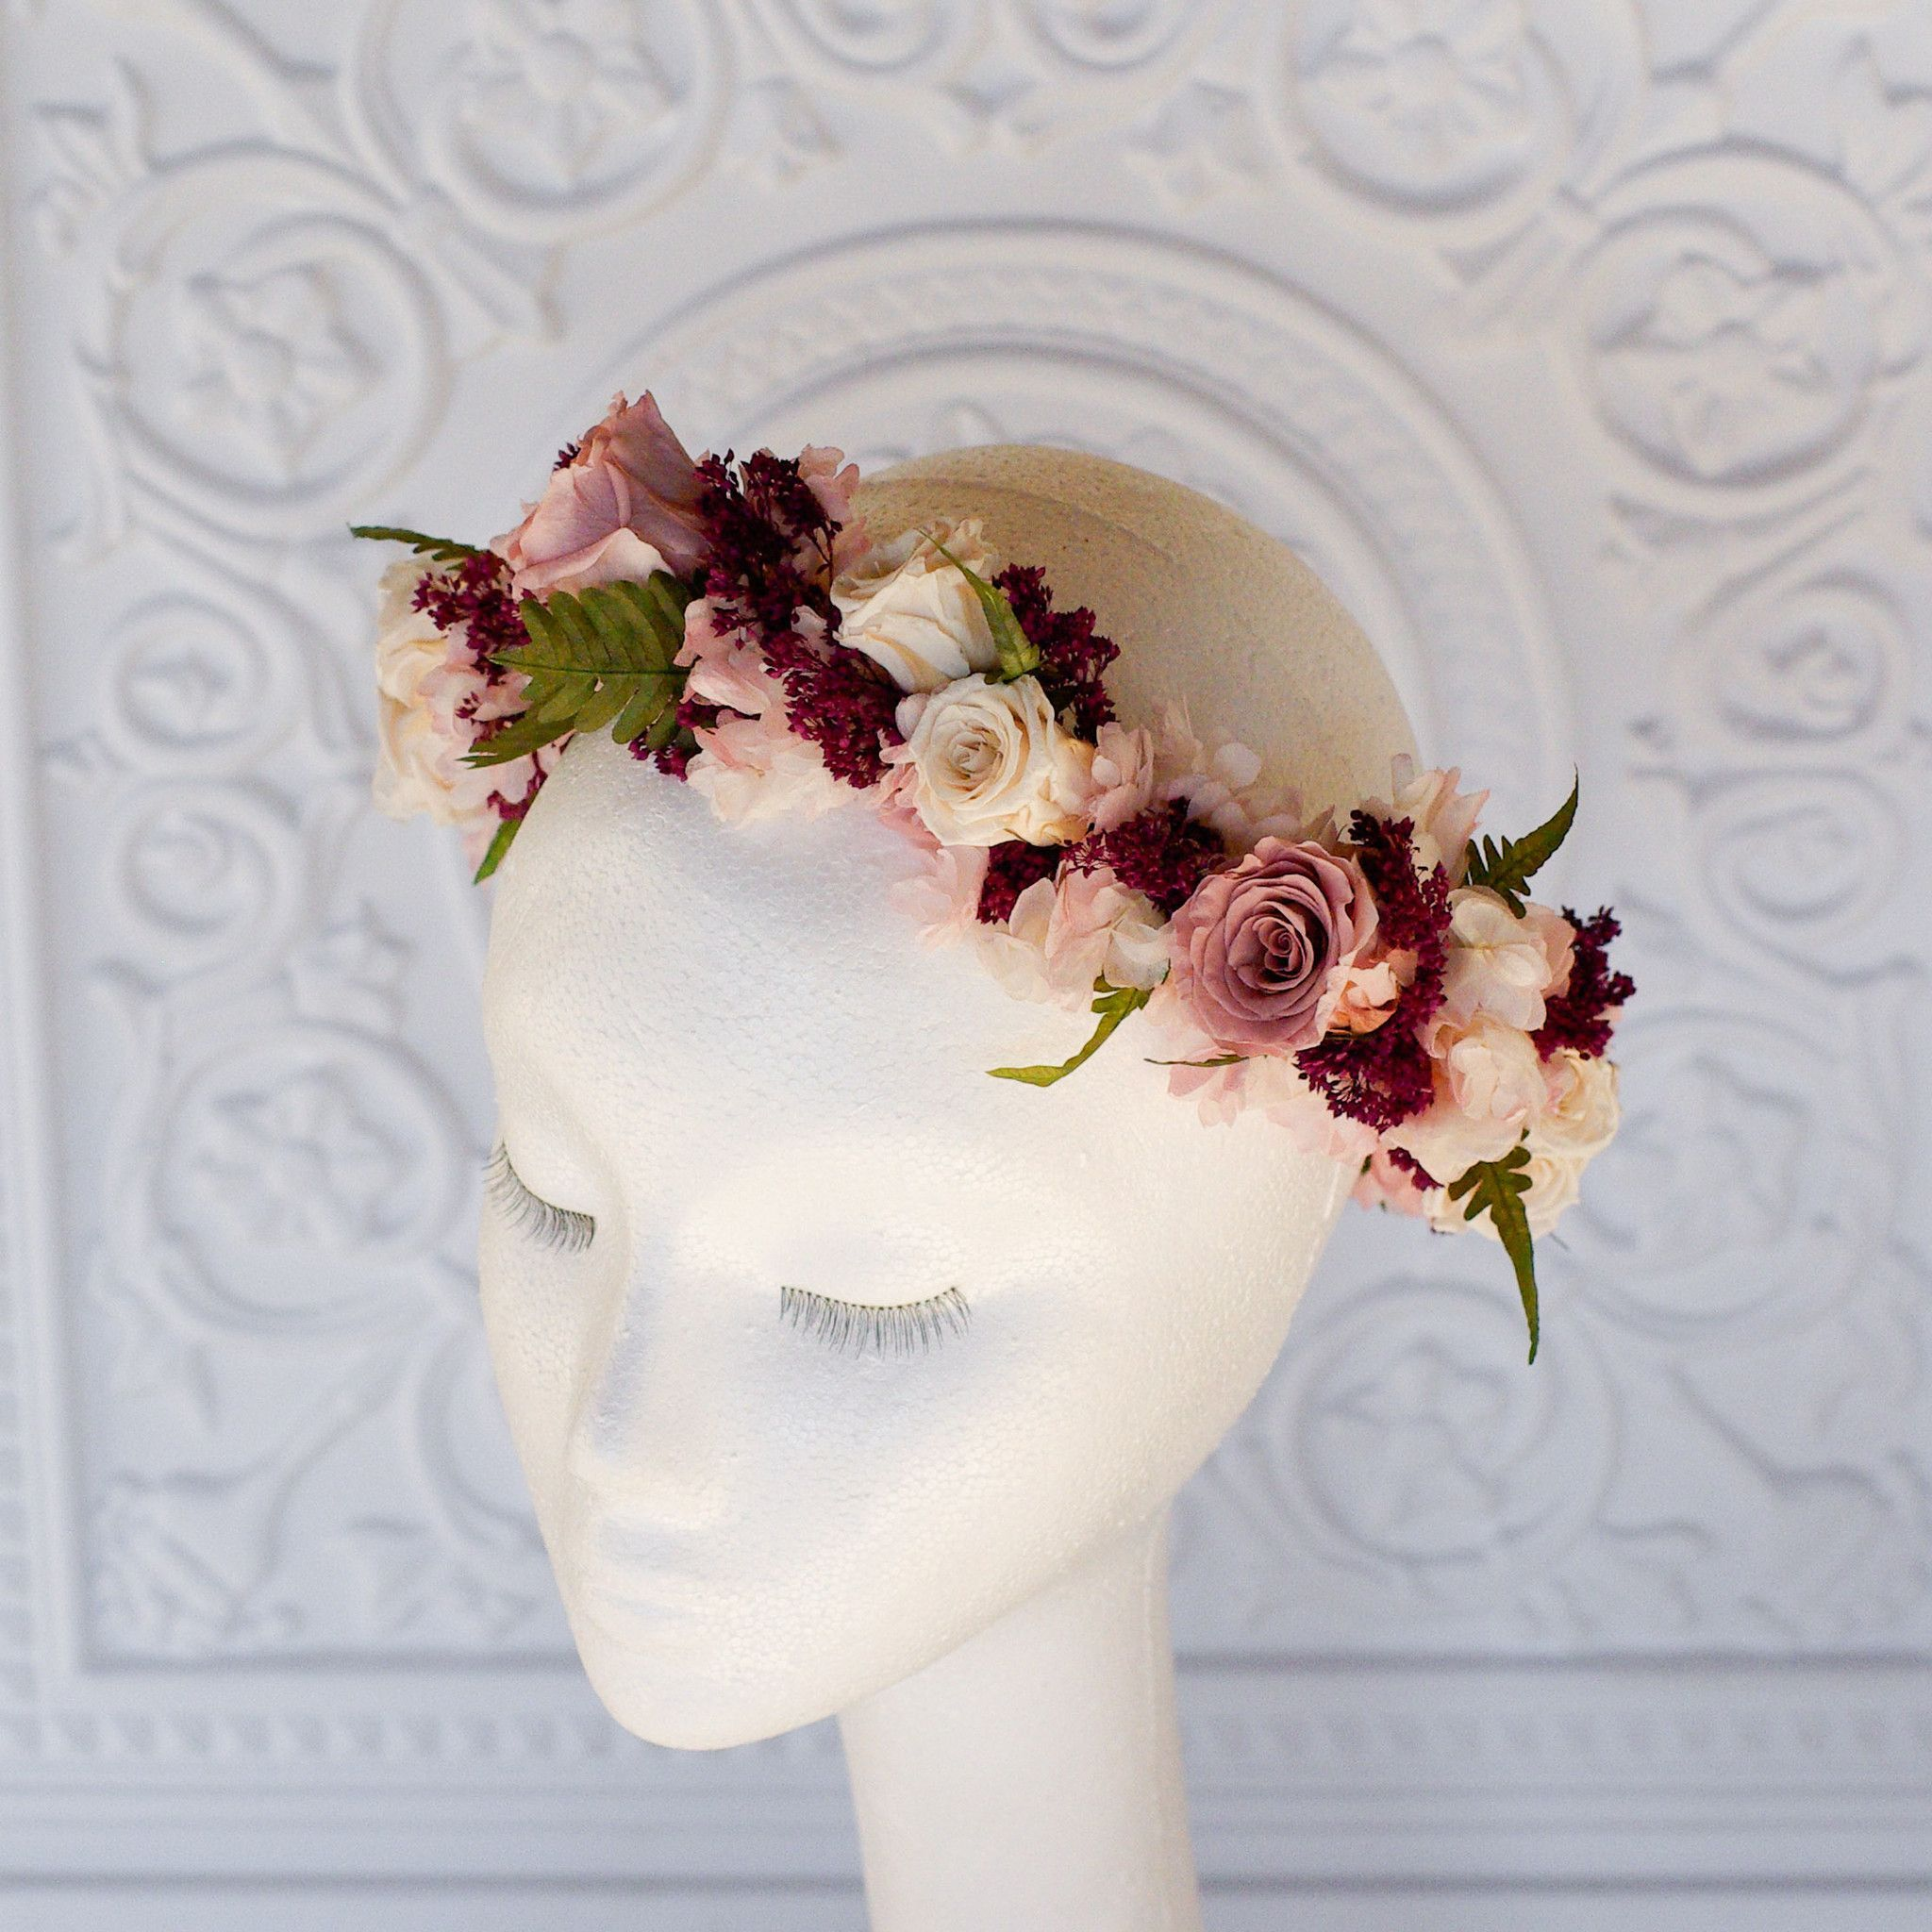 A Floral Crown Made With All Real Preserved Flowers That Will Not